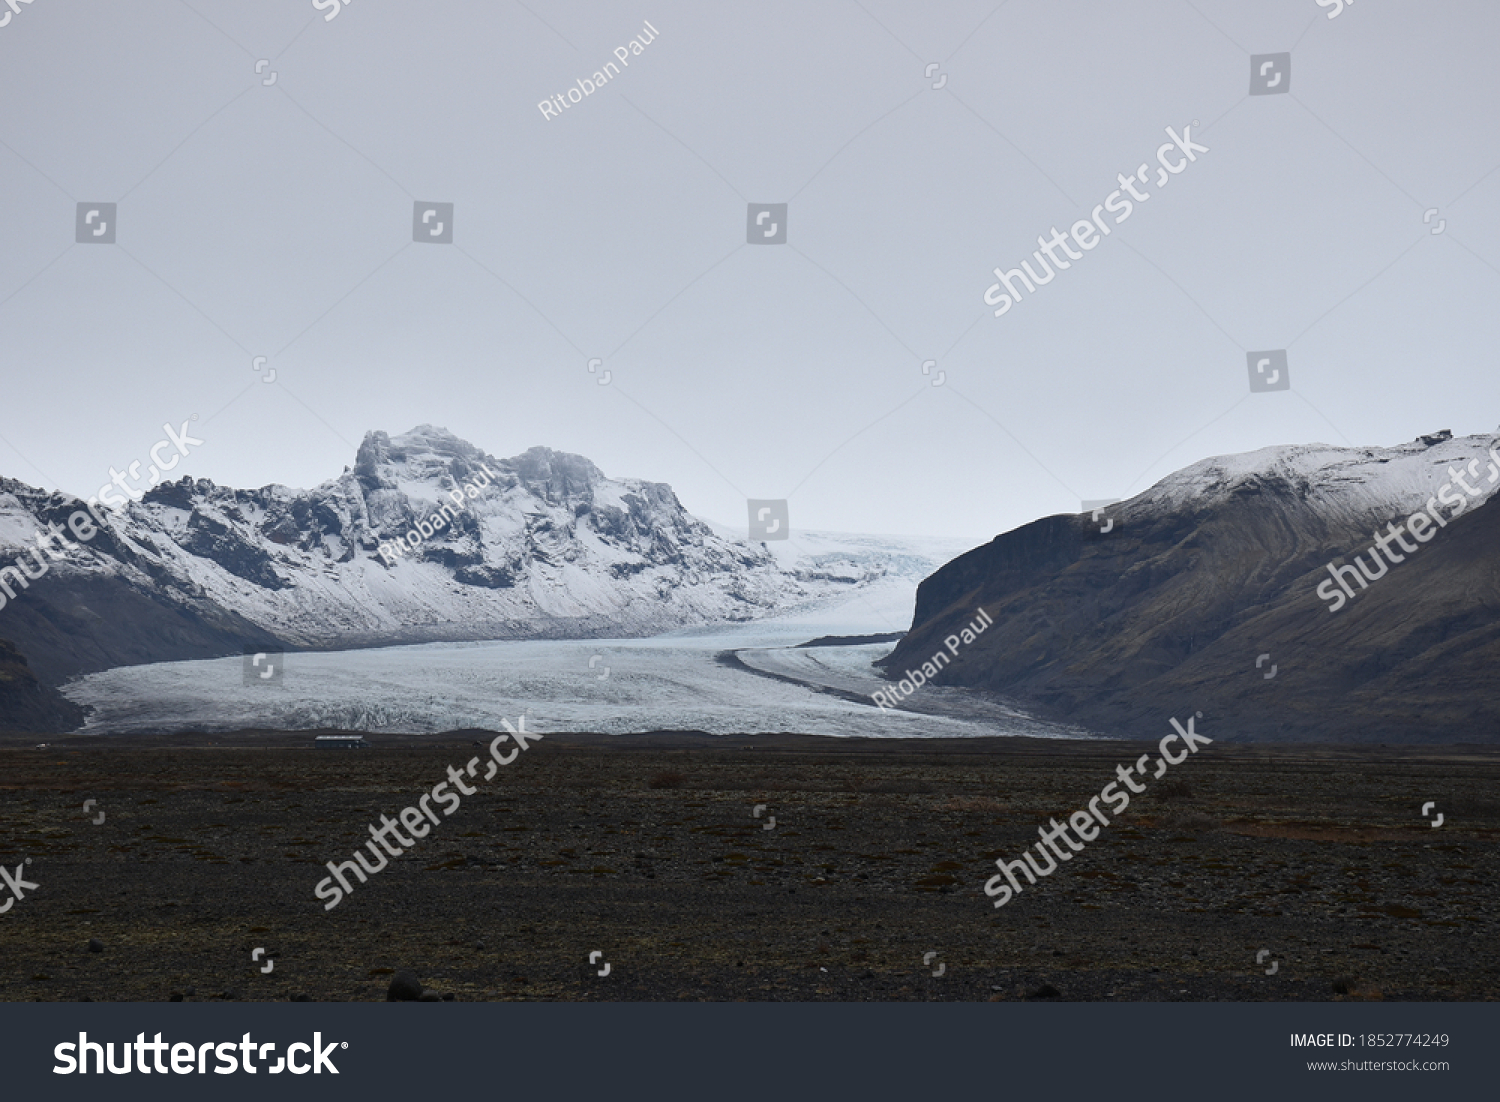 stock-photo-a-picture-of-a-snow-capped-m